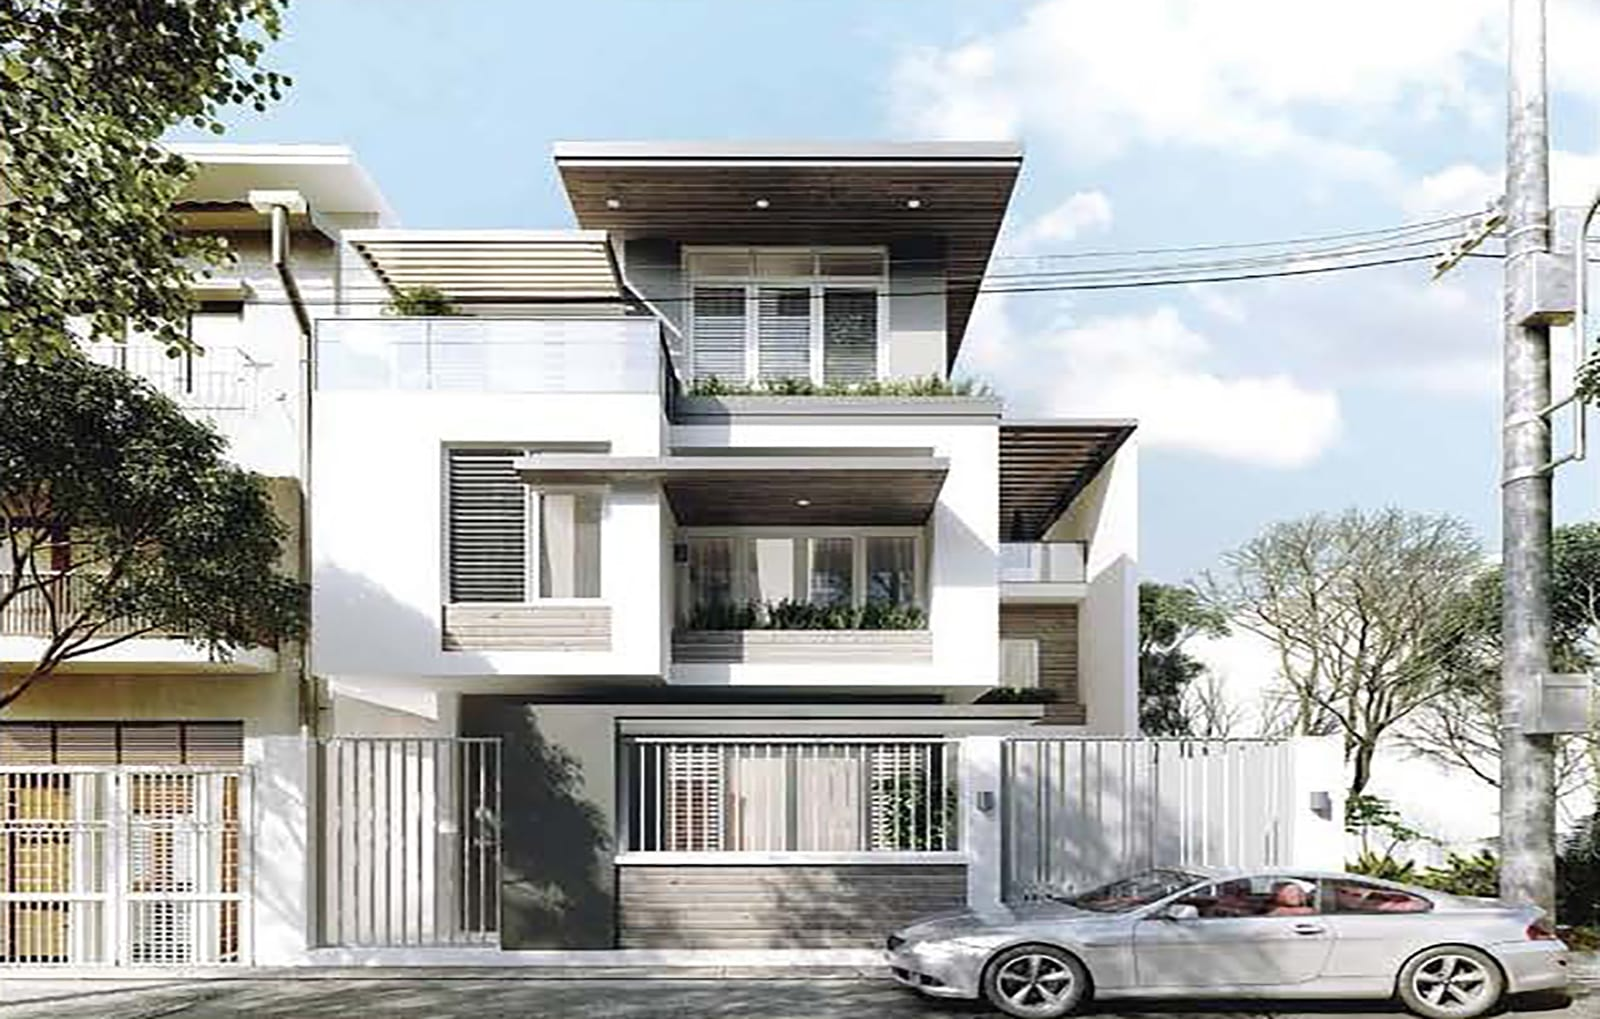 CALOUNDRA HOUSE | Queensland